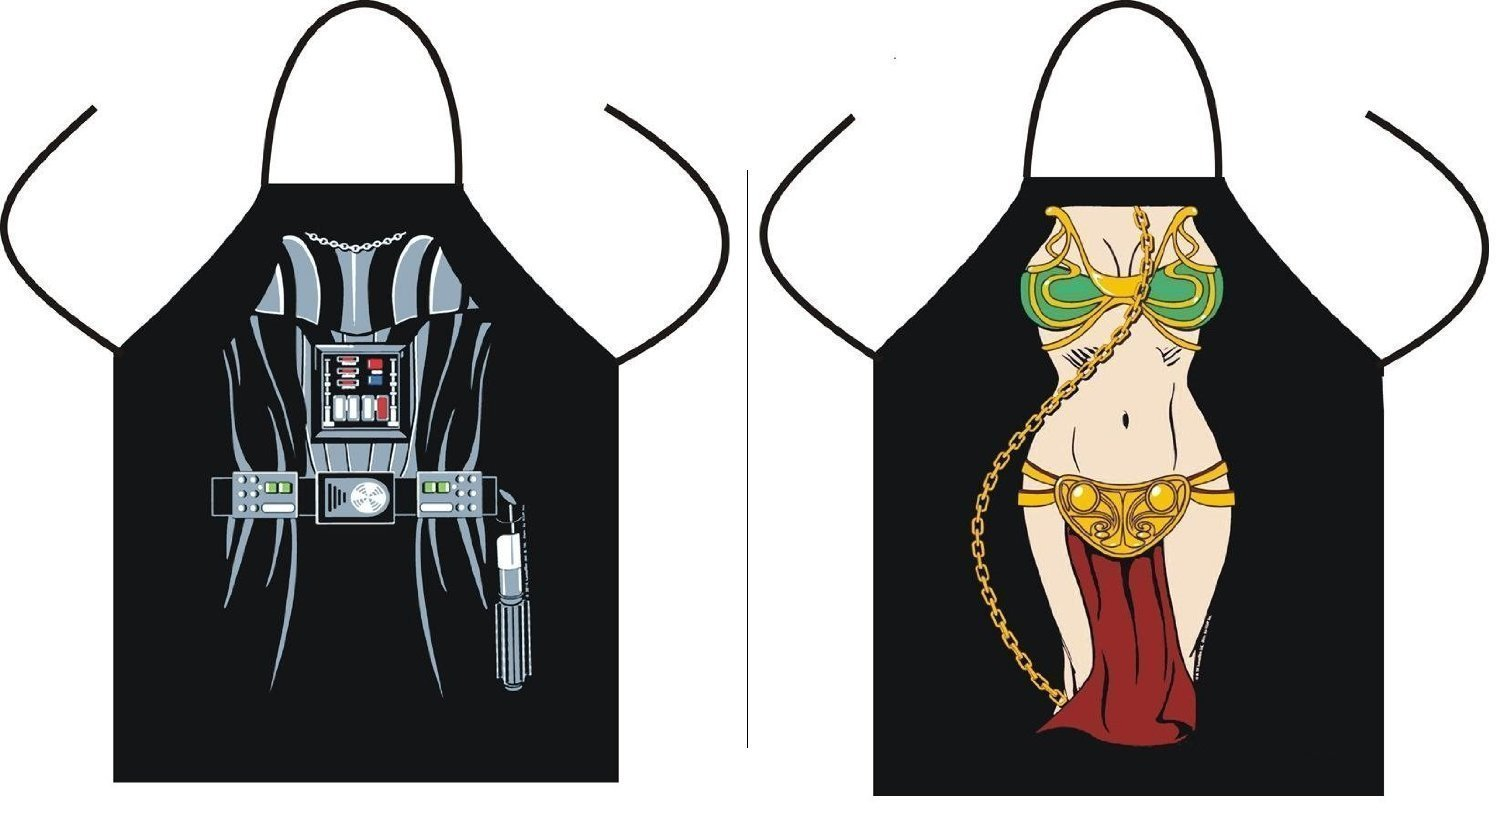 (Set of 2) Star Wars Aprons for Kitchen Cooking and BBQing (Leah, Darth Vader) Lucy&M